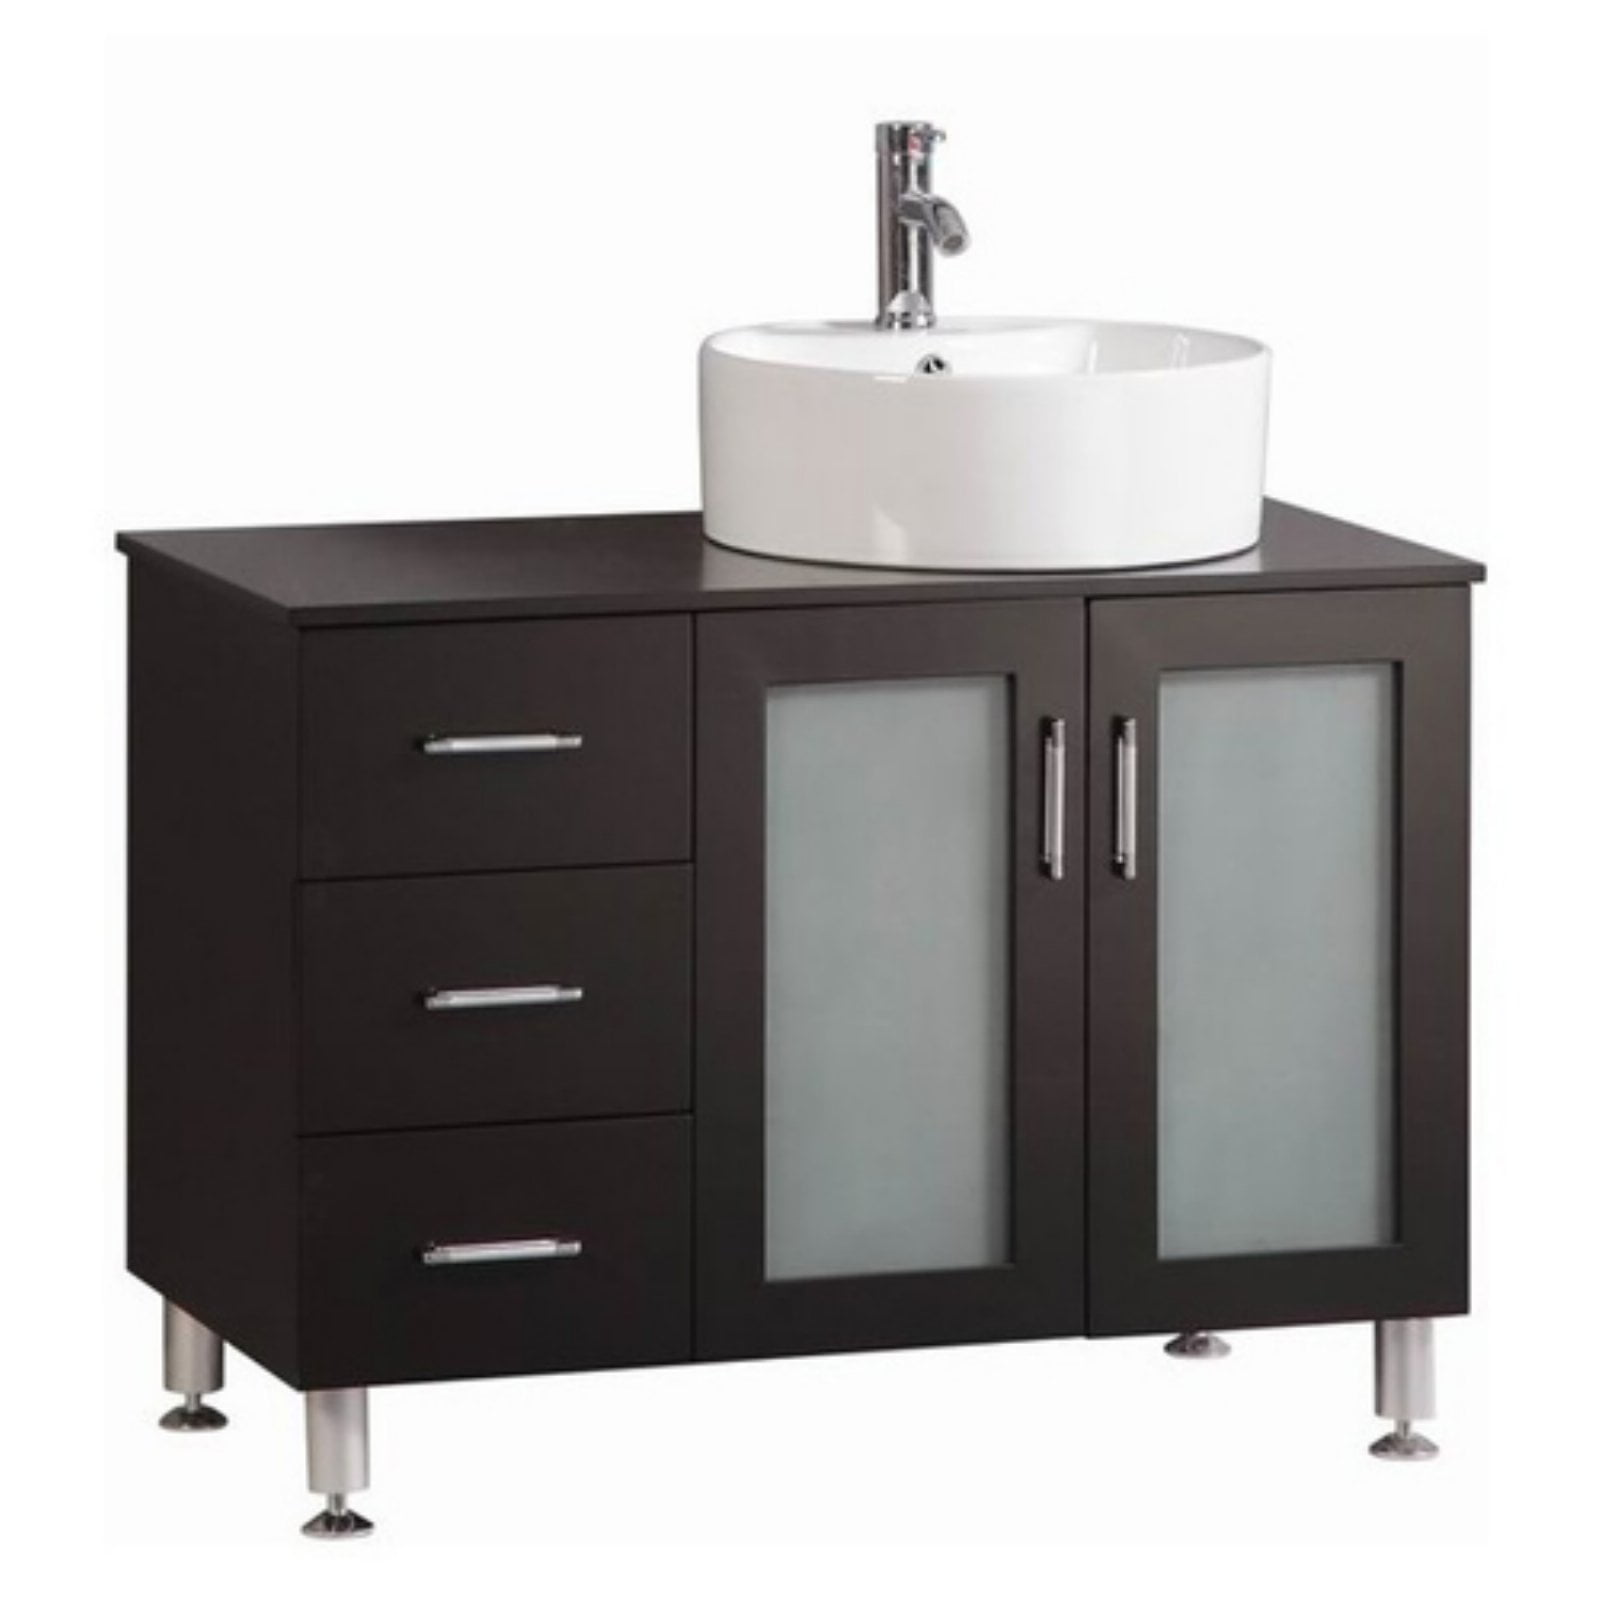 Belvedere 40 in. Modern Freestanding Single Vessel Bathroom Vanity by Belvedere Bath LLC